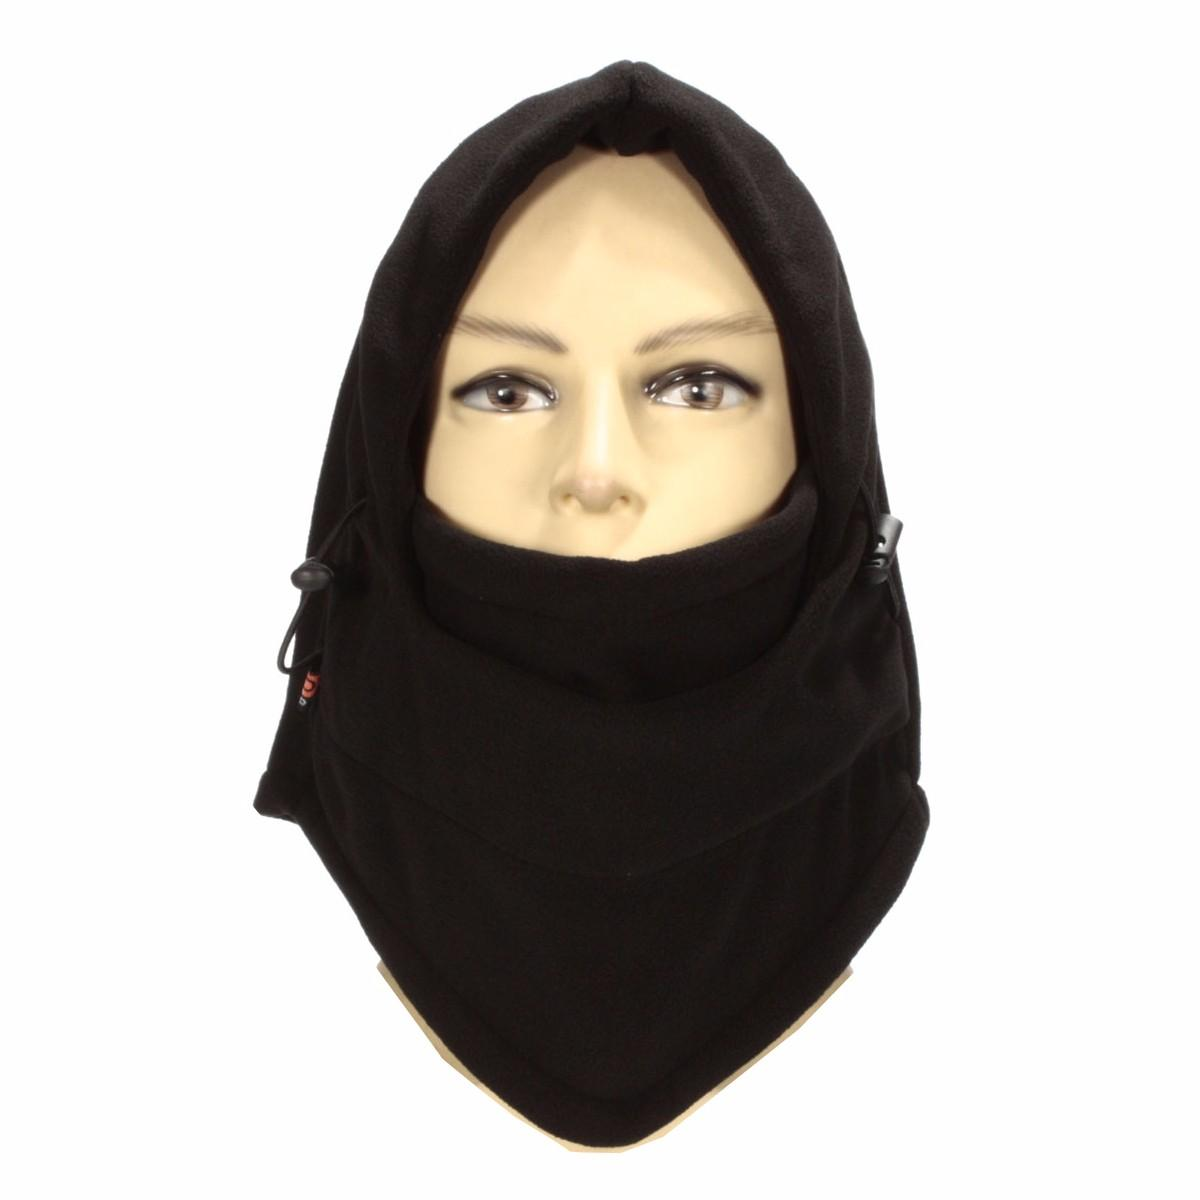 58d8d5a520f Motorcycle Full Face Mask Cap Ski Winter Warm Windproof Balaclava Cover  Neck Hat COD